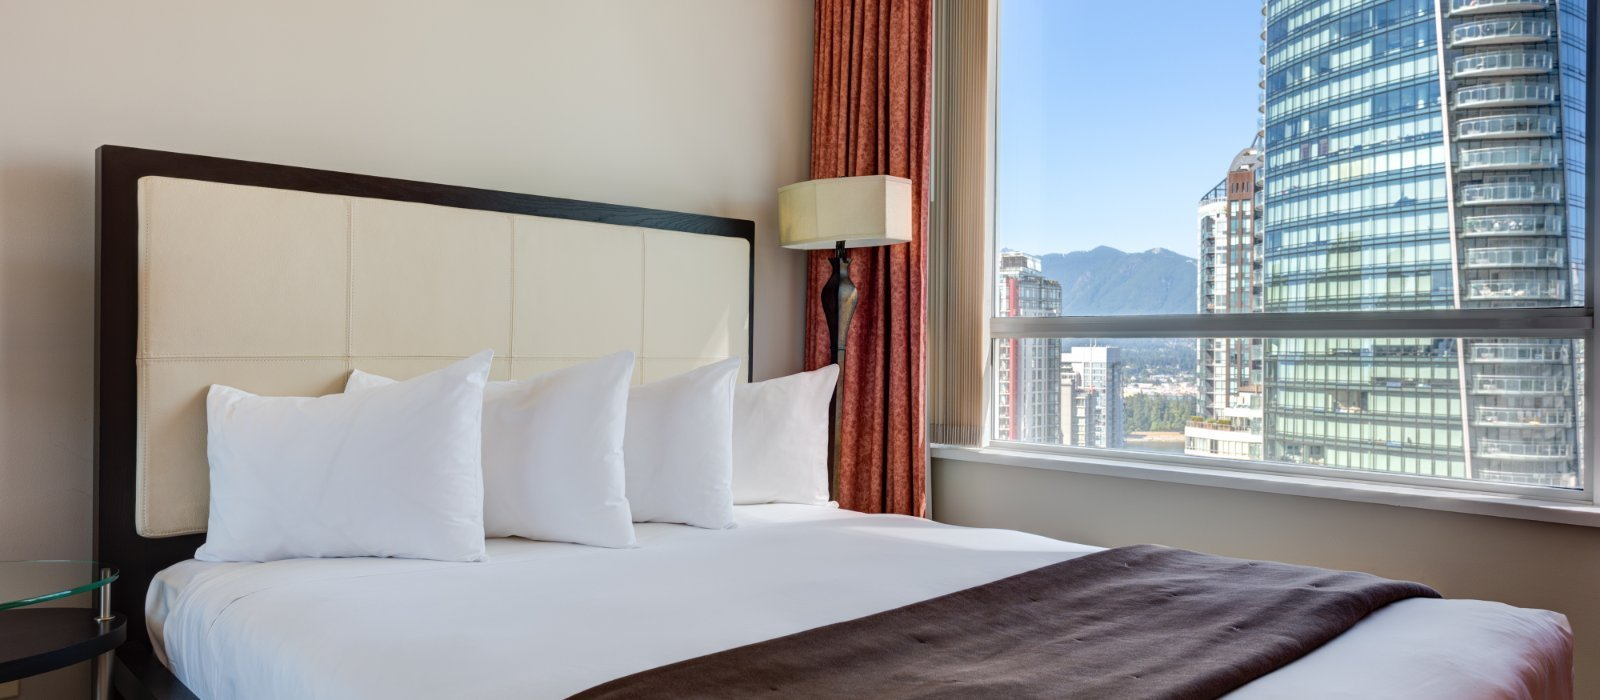 Best Boutique Hotel Suites In Vancouver Downtown Carmana Plaza With Pictures